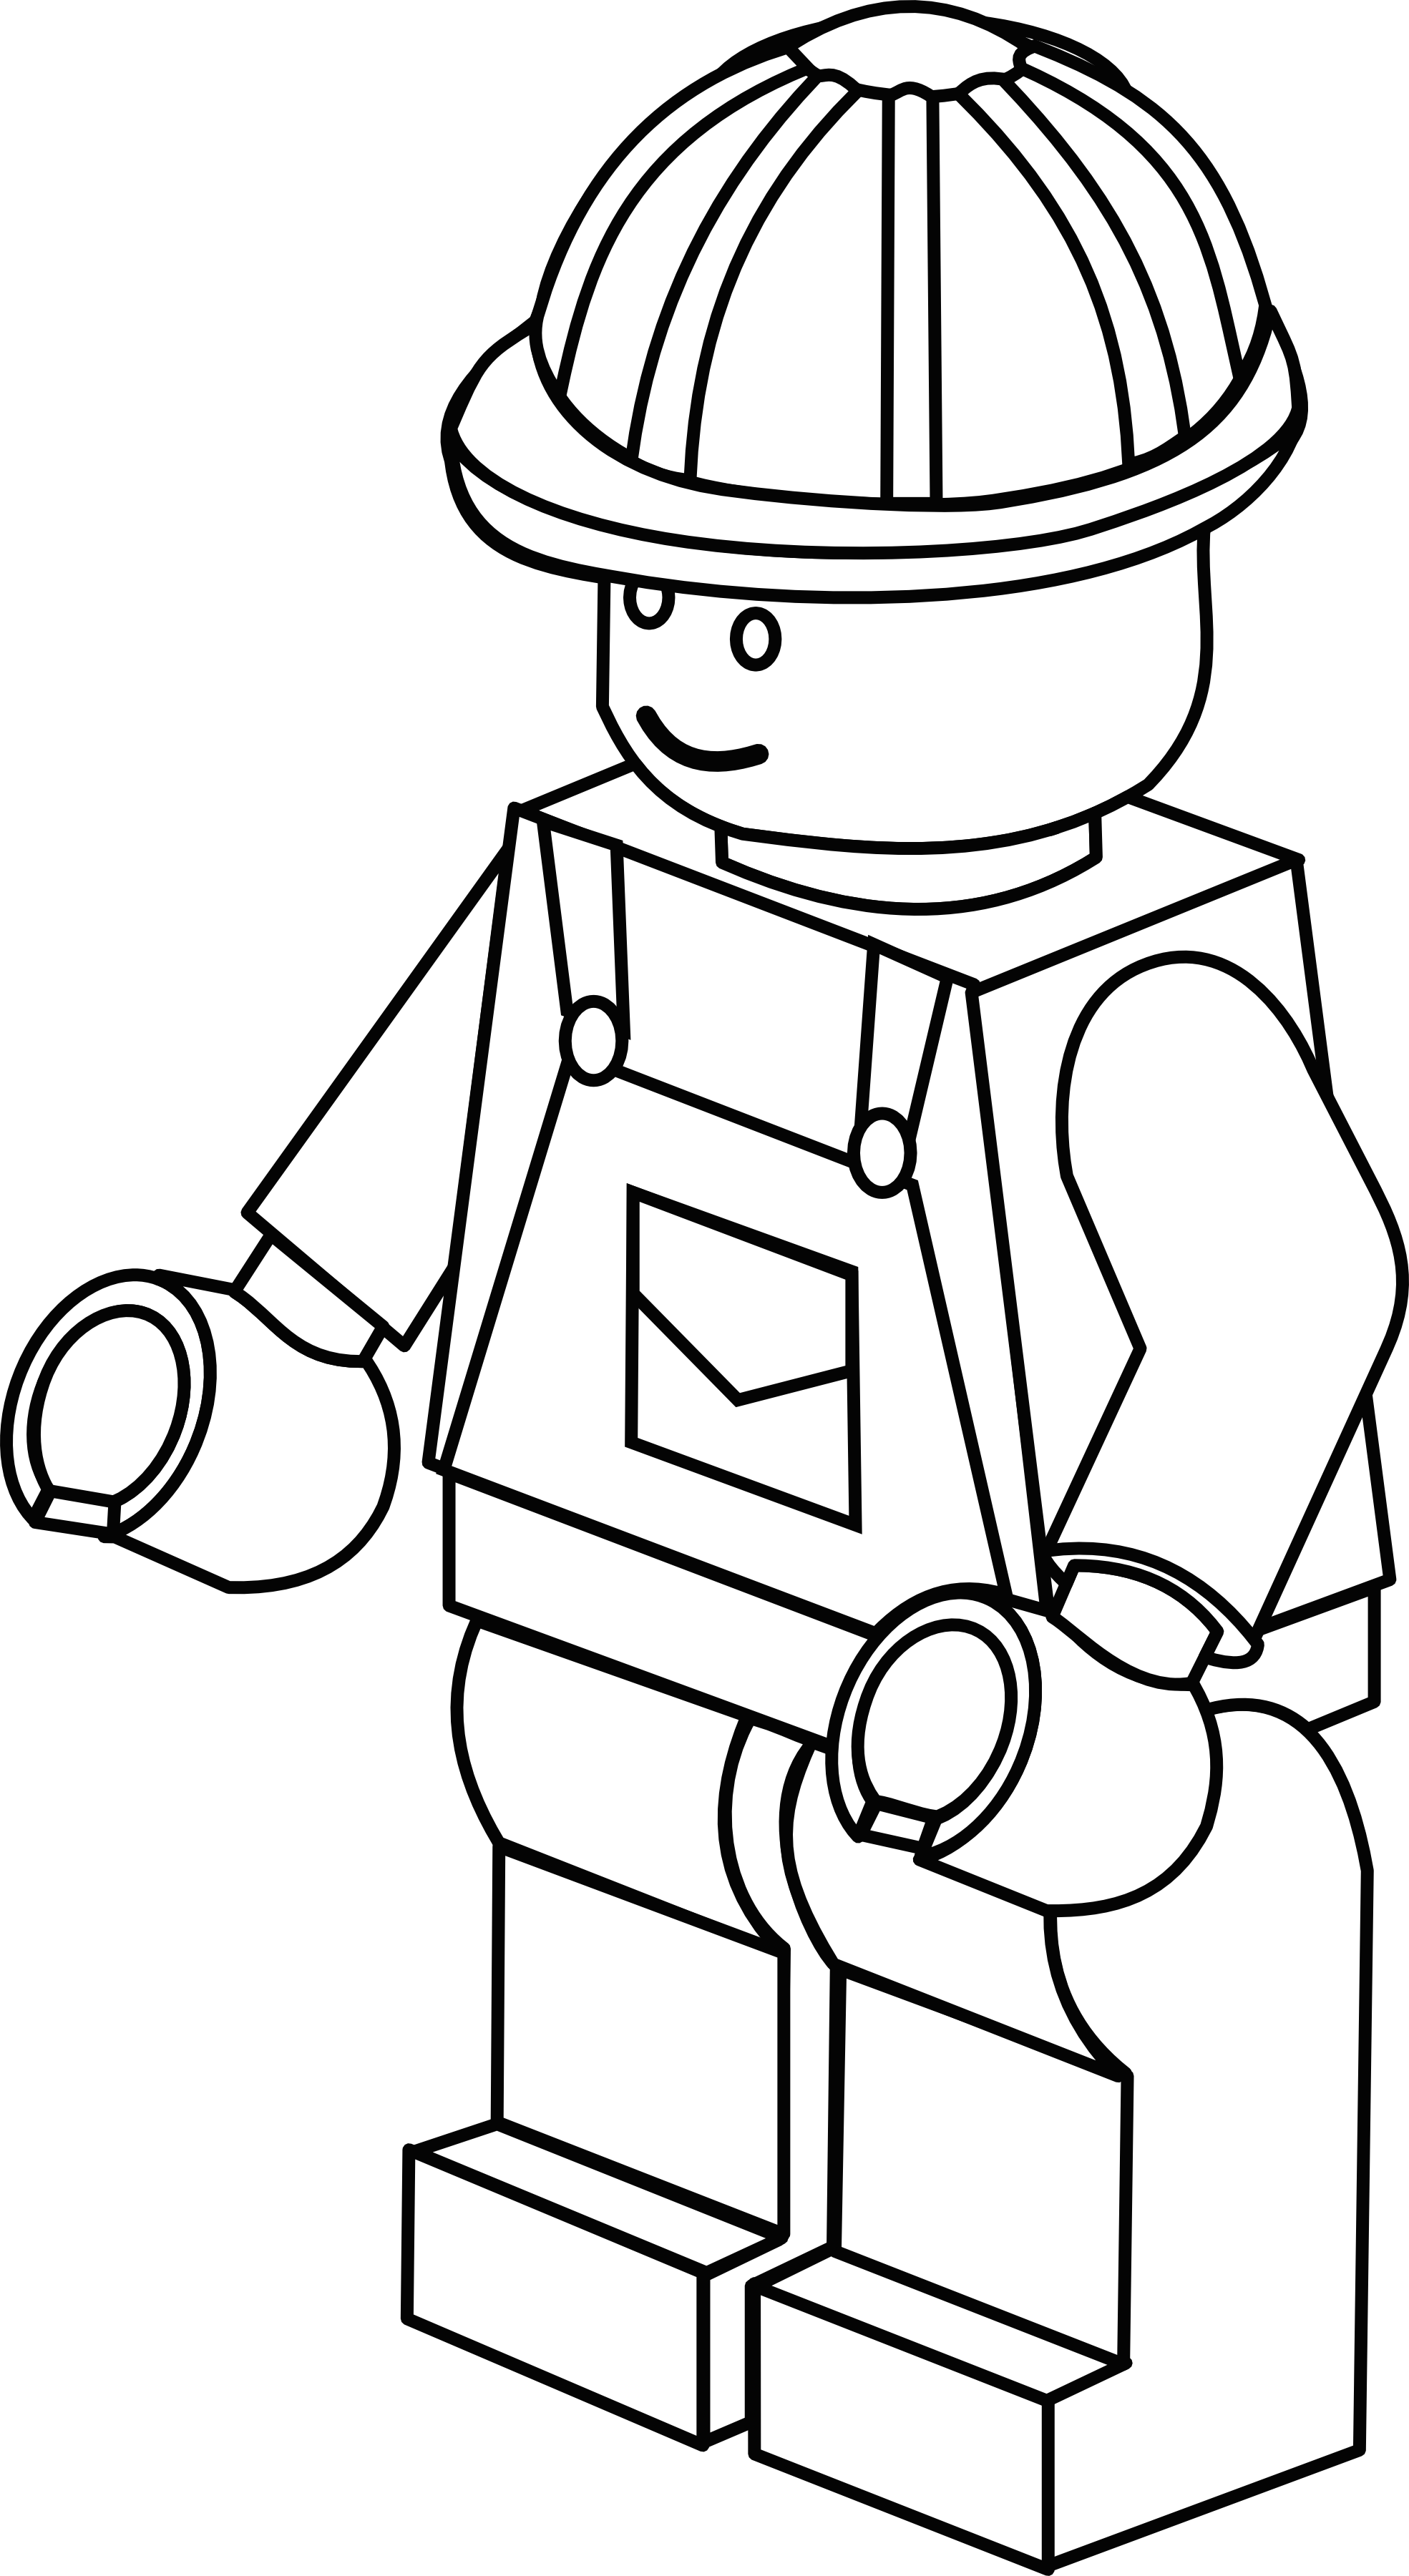 lego pictures to colour more complex lego figure colouring sheet lego coloring pictures lego to colour